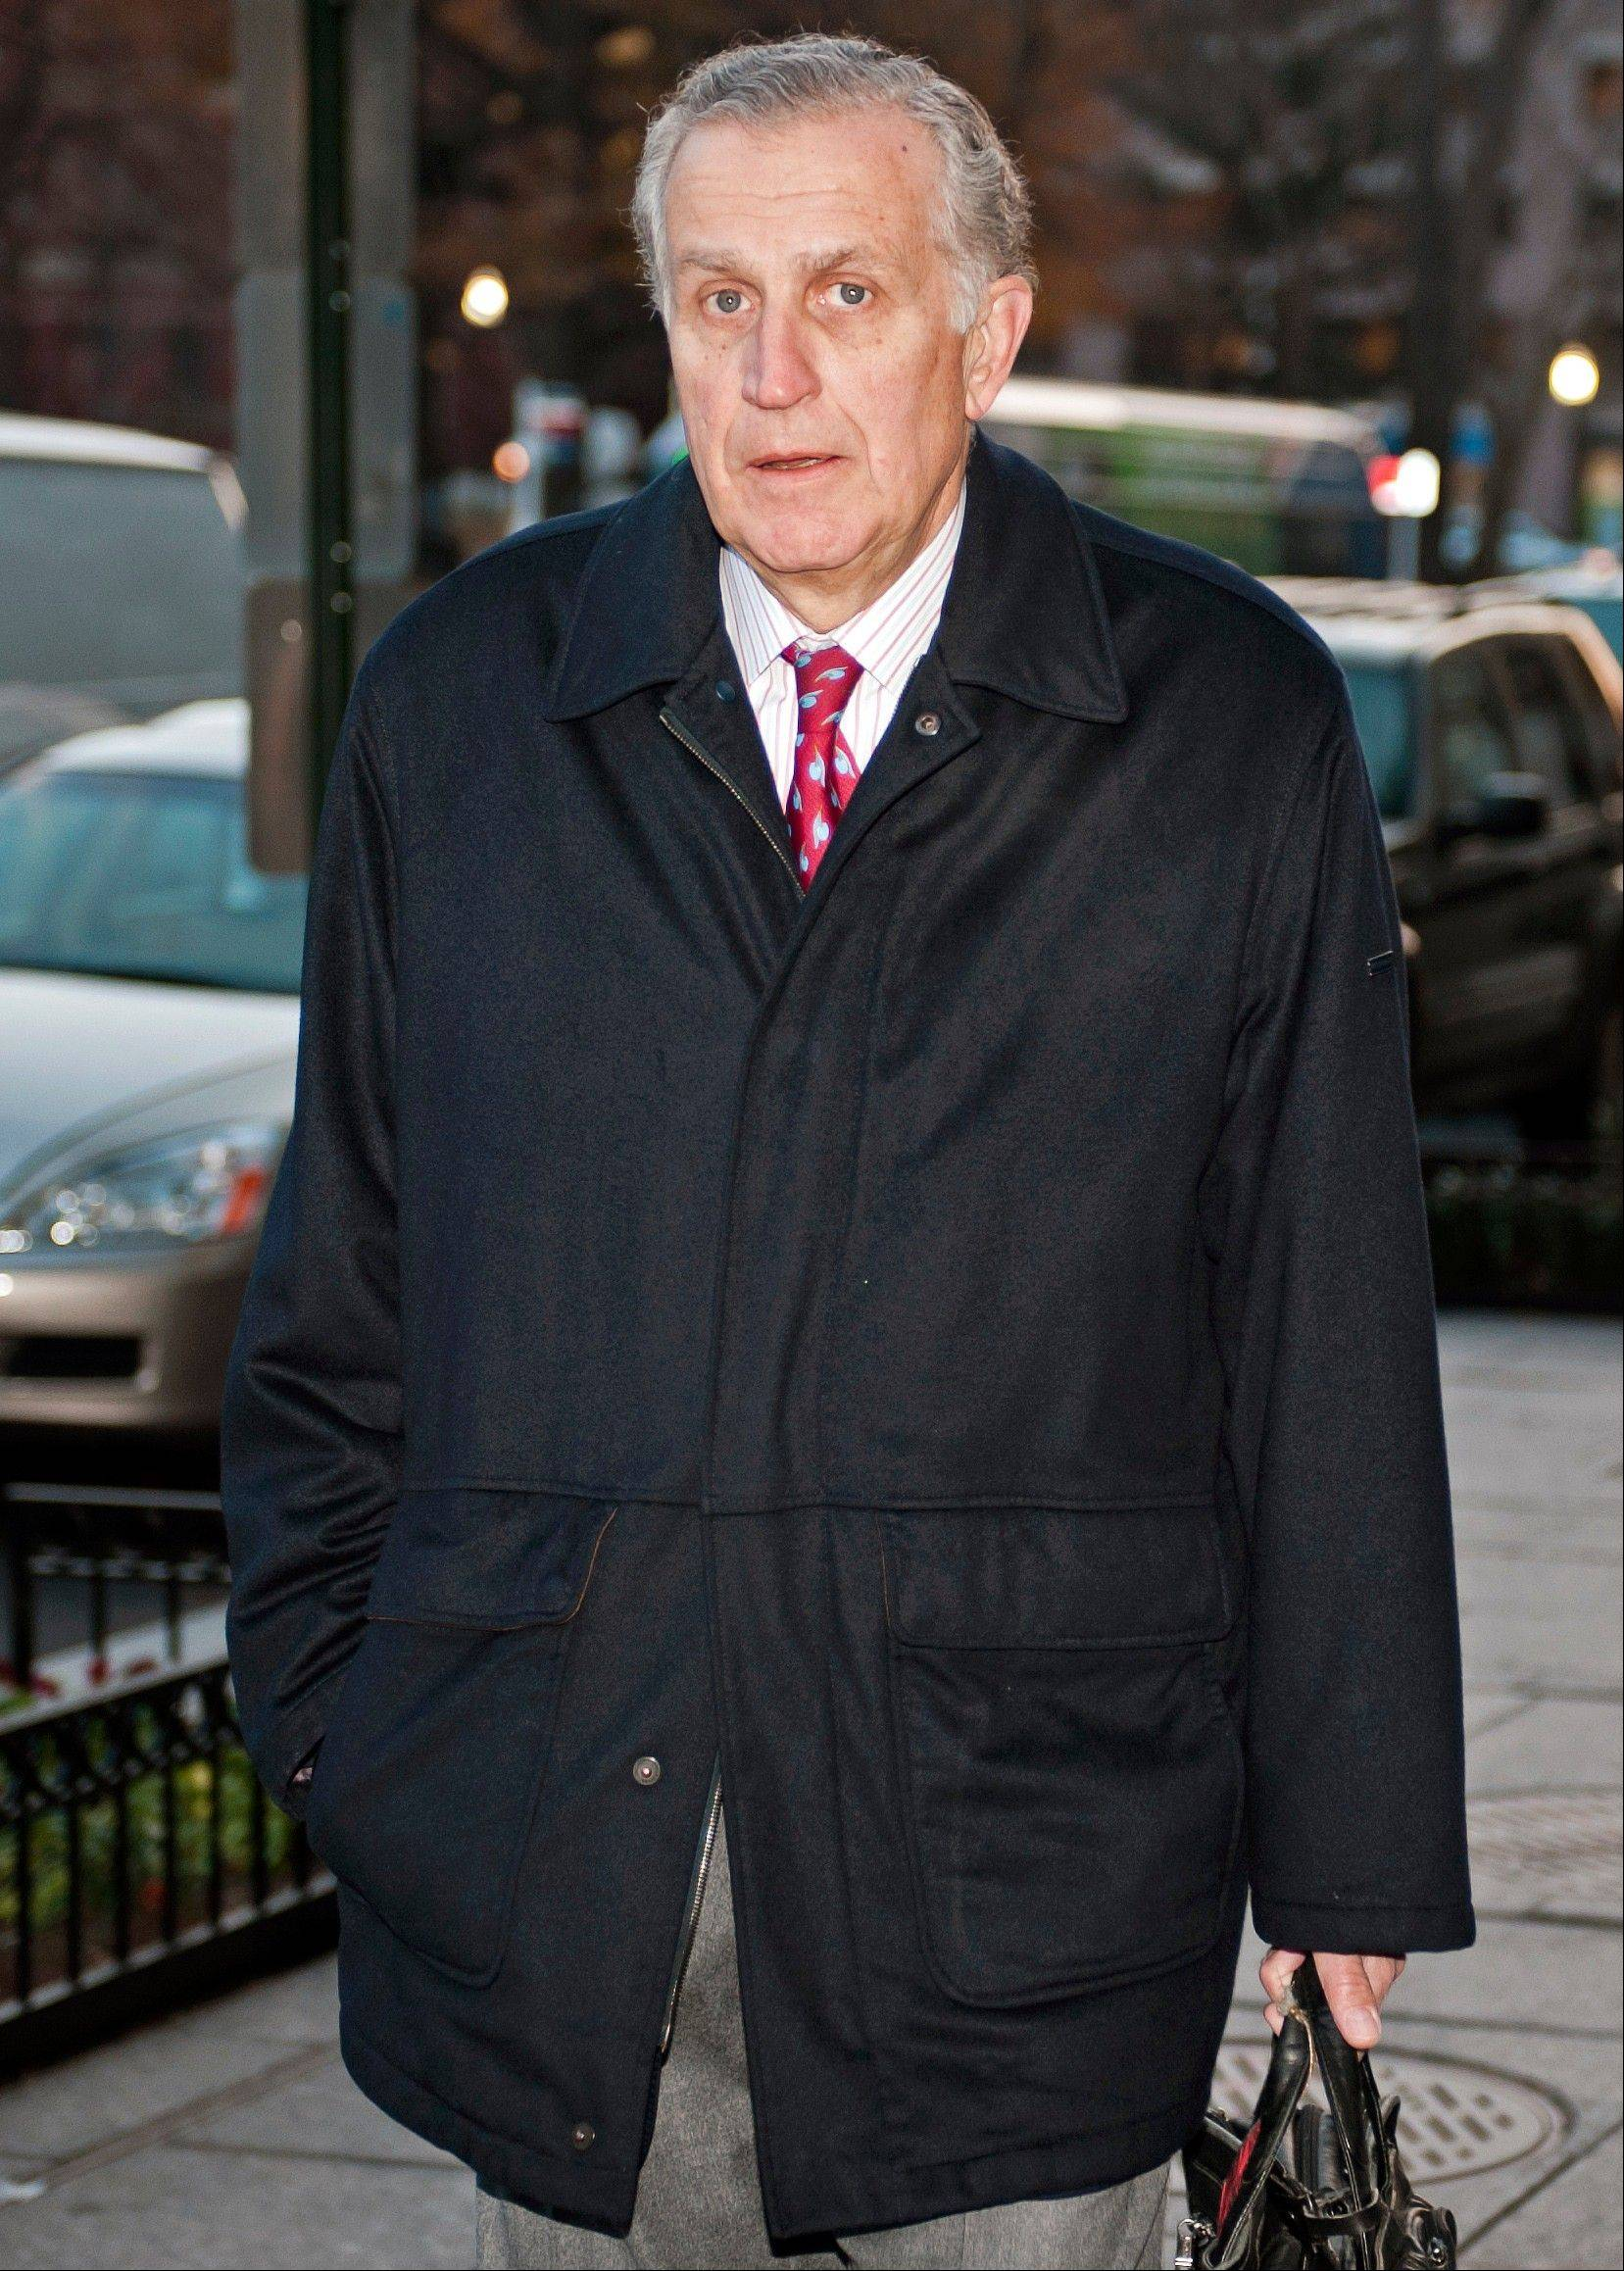 Former NFL Commissioner Paul Tagliabue overturned the suspensions of four current and former New Orleans Saints players in the league's bounty investigation of the club.